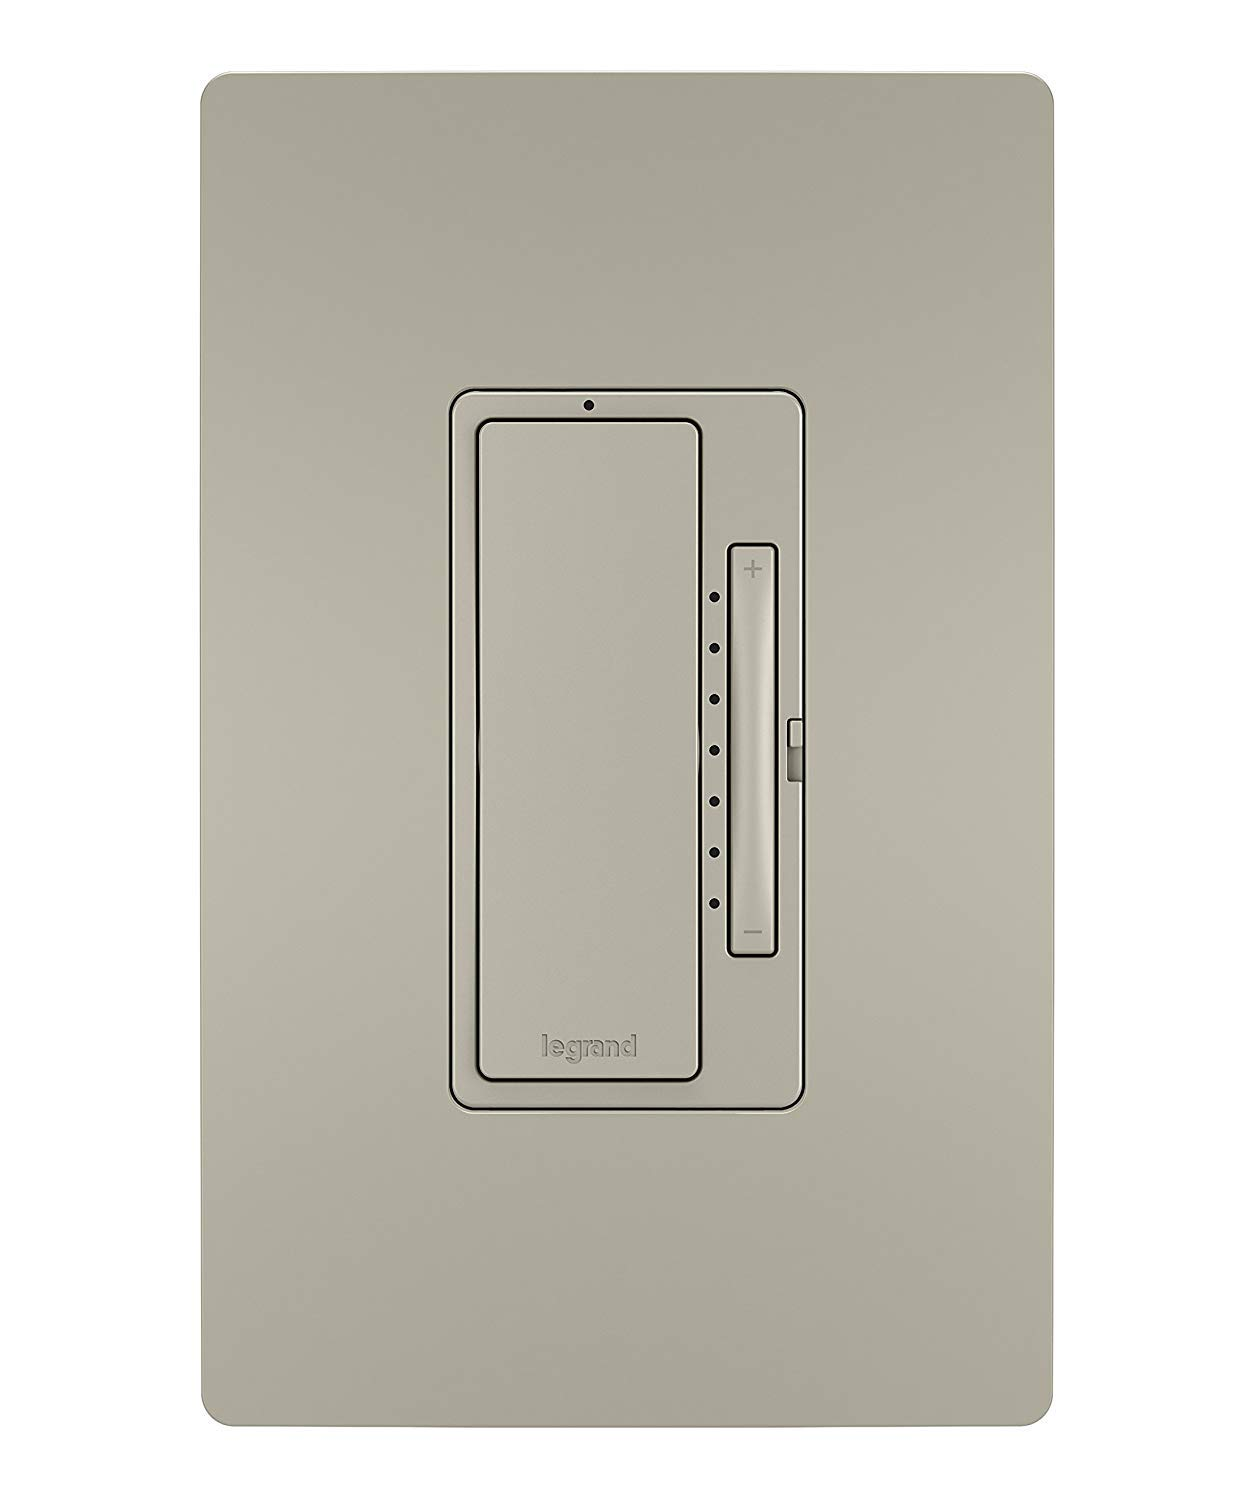 Pass & Seymour Legrand Radiant WWRL50NICCV2 Tru-Universal Enabled Dimmer, Nickel Smart Wi-Fi Switch by Pass & Seymour